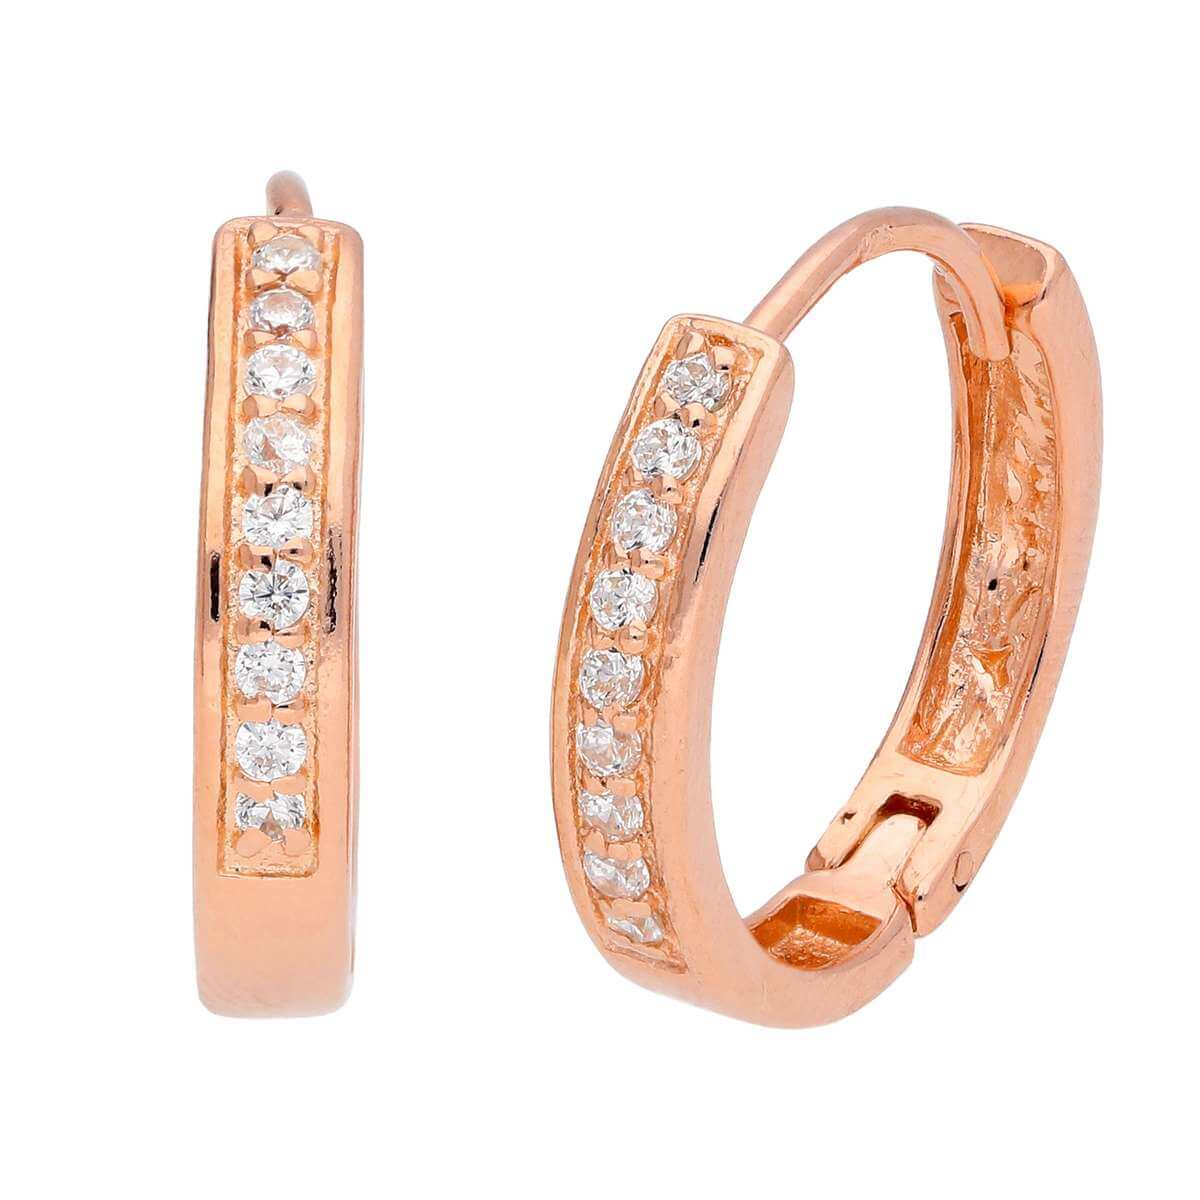 Rose Gold Plated Sterling Silver CZ Pave 19mm Hoop Earrings